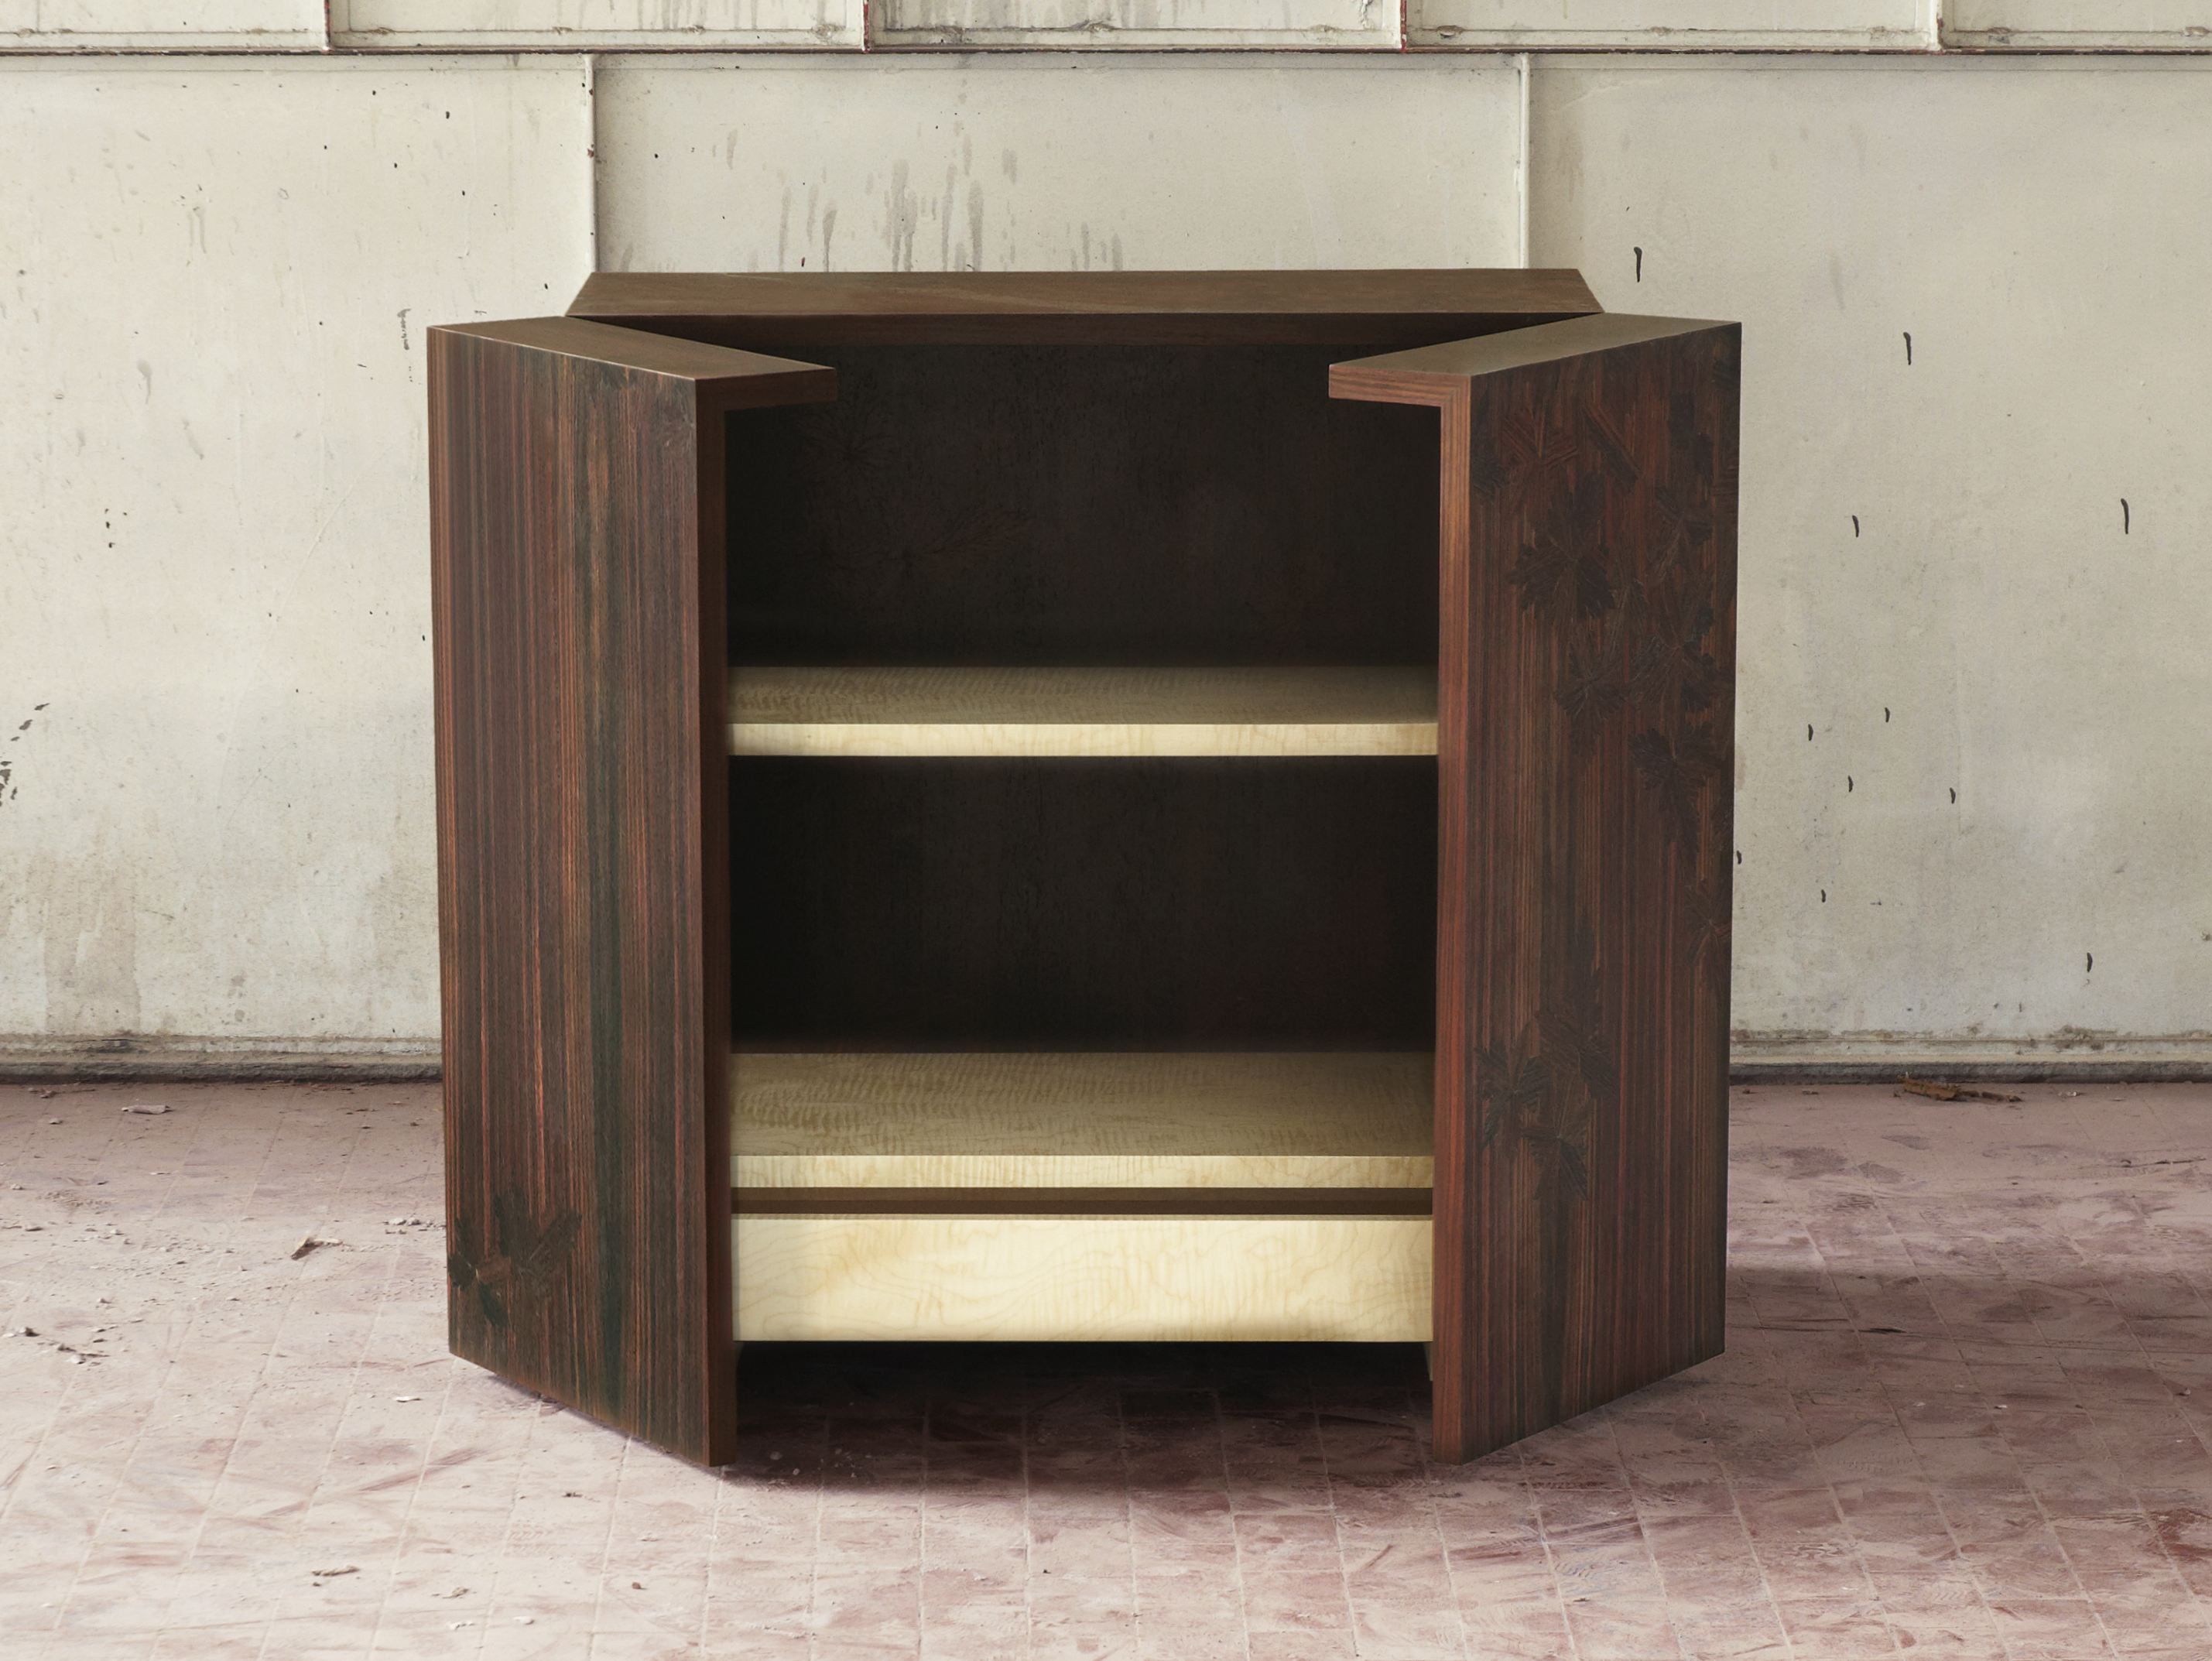 Good Wooden Storage Unit . Perfect Archiproducts